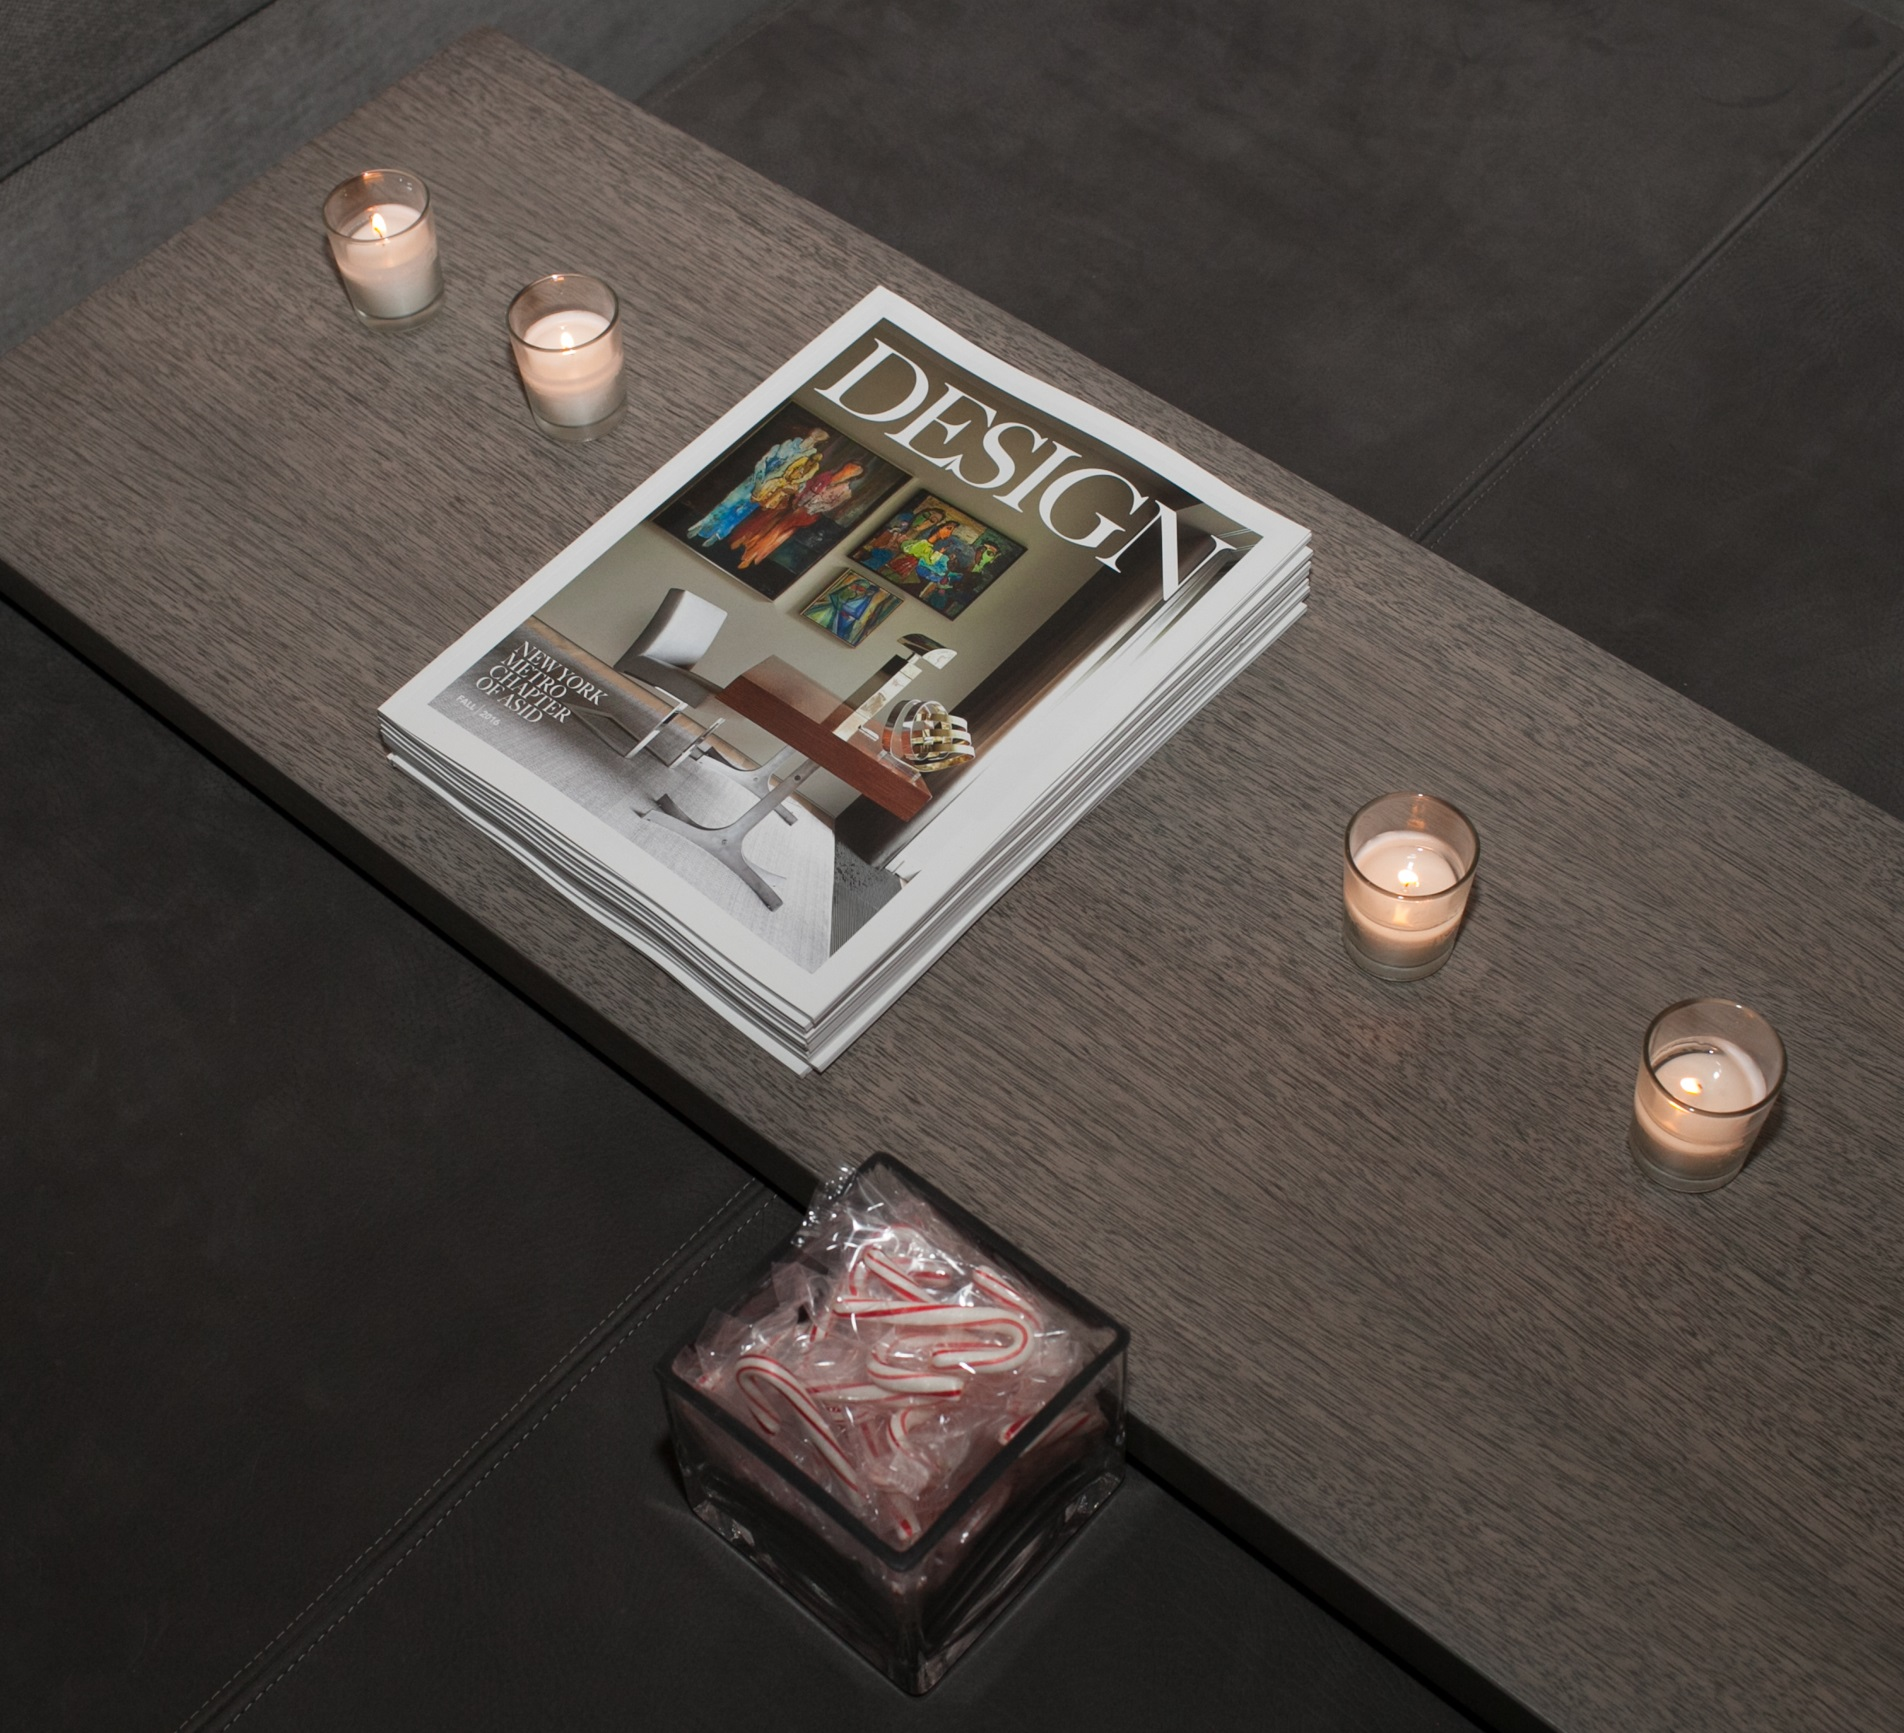 The new DESIGN magazine was on full display around the Bright Group showroom.